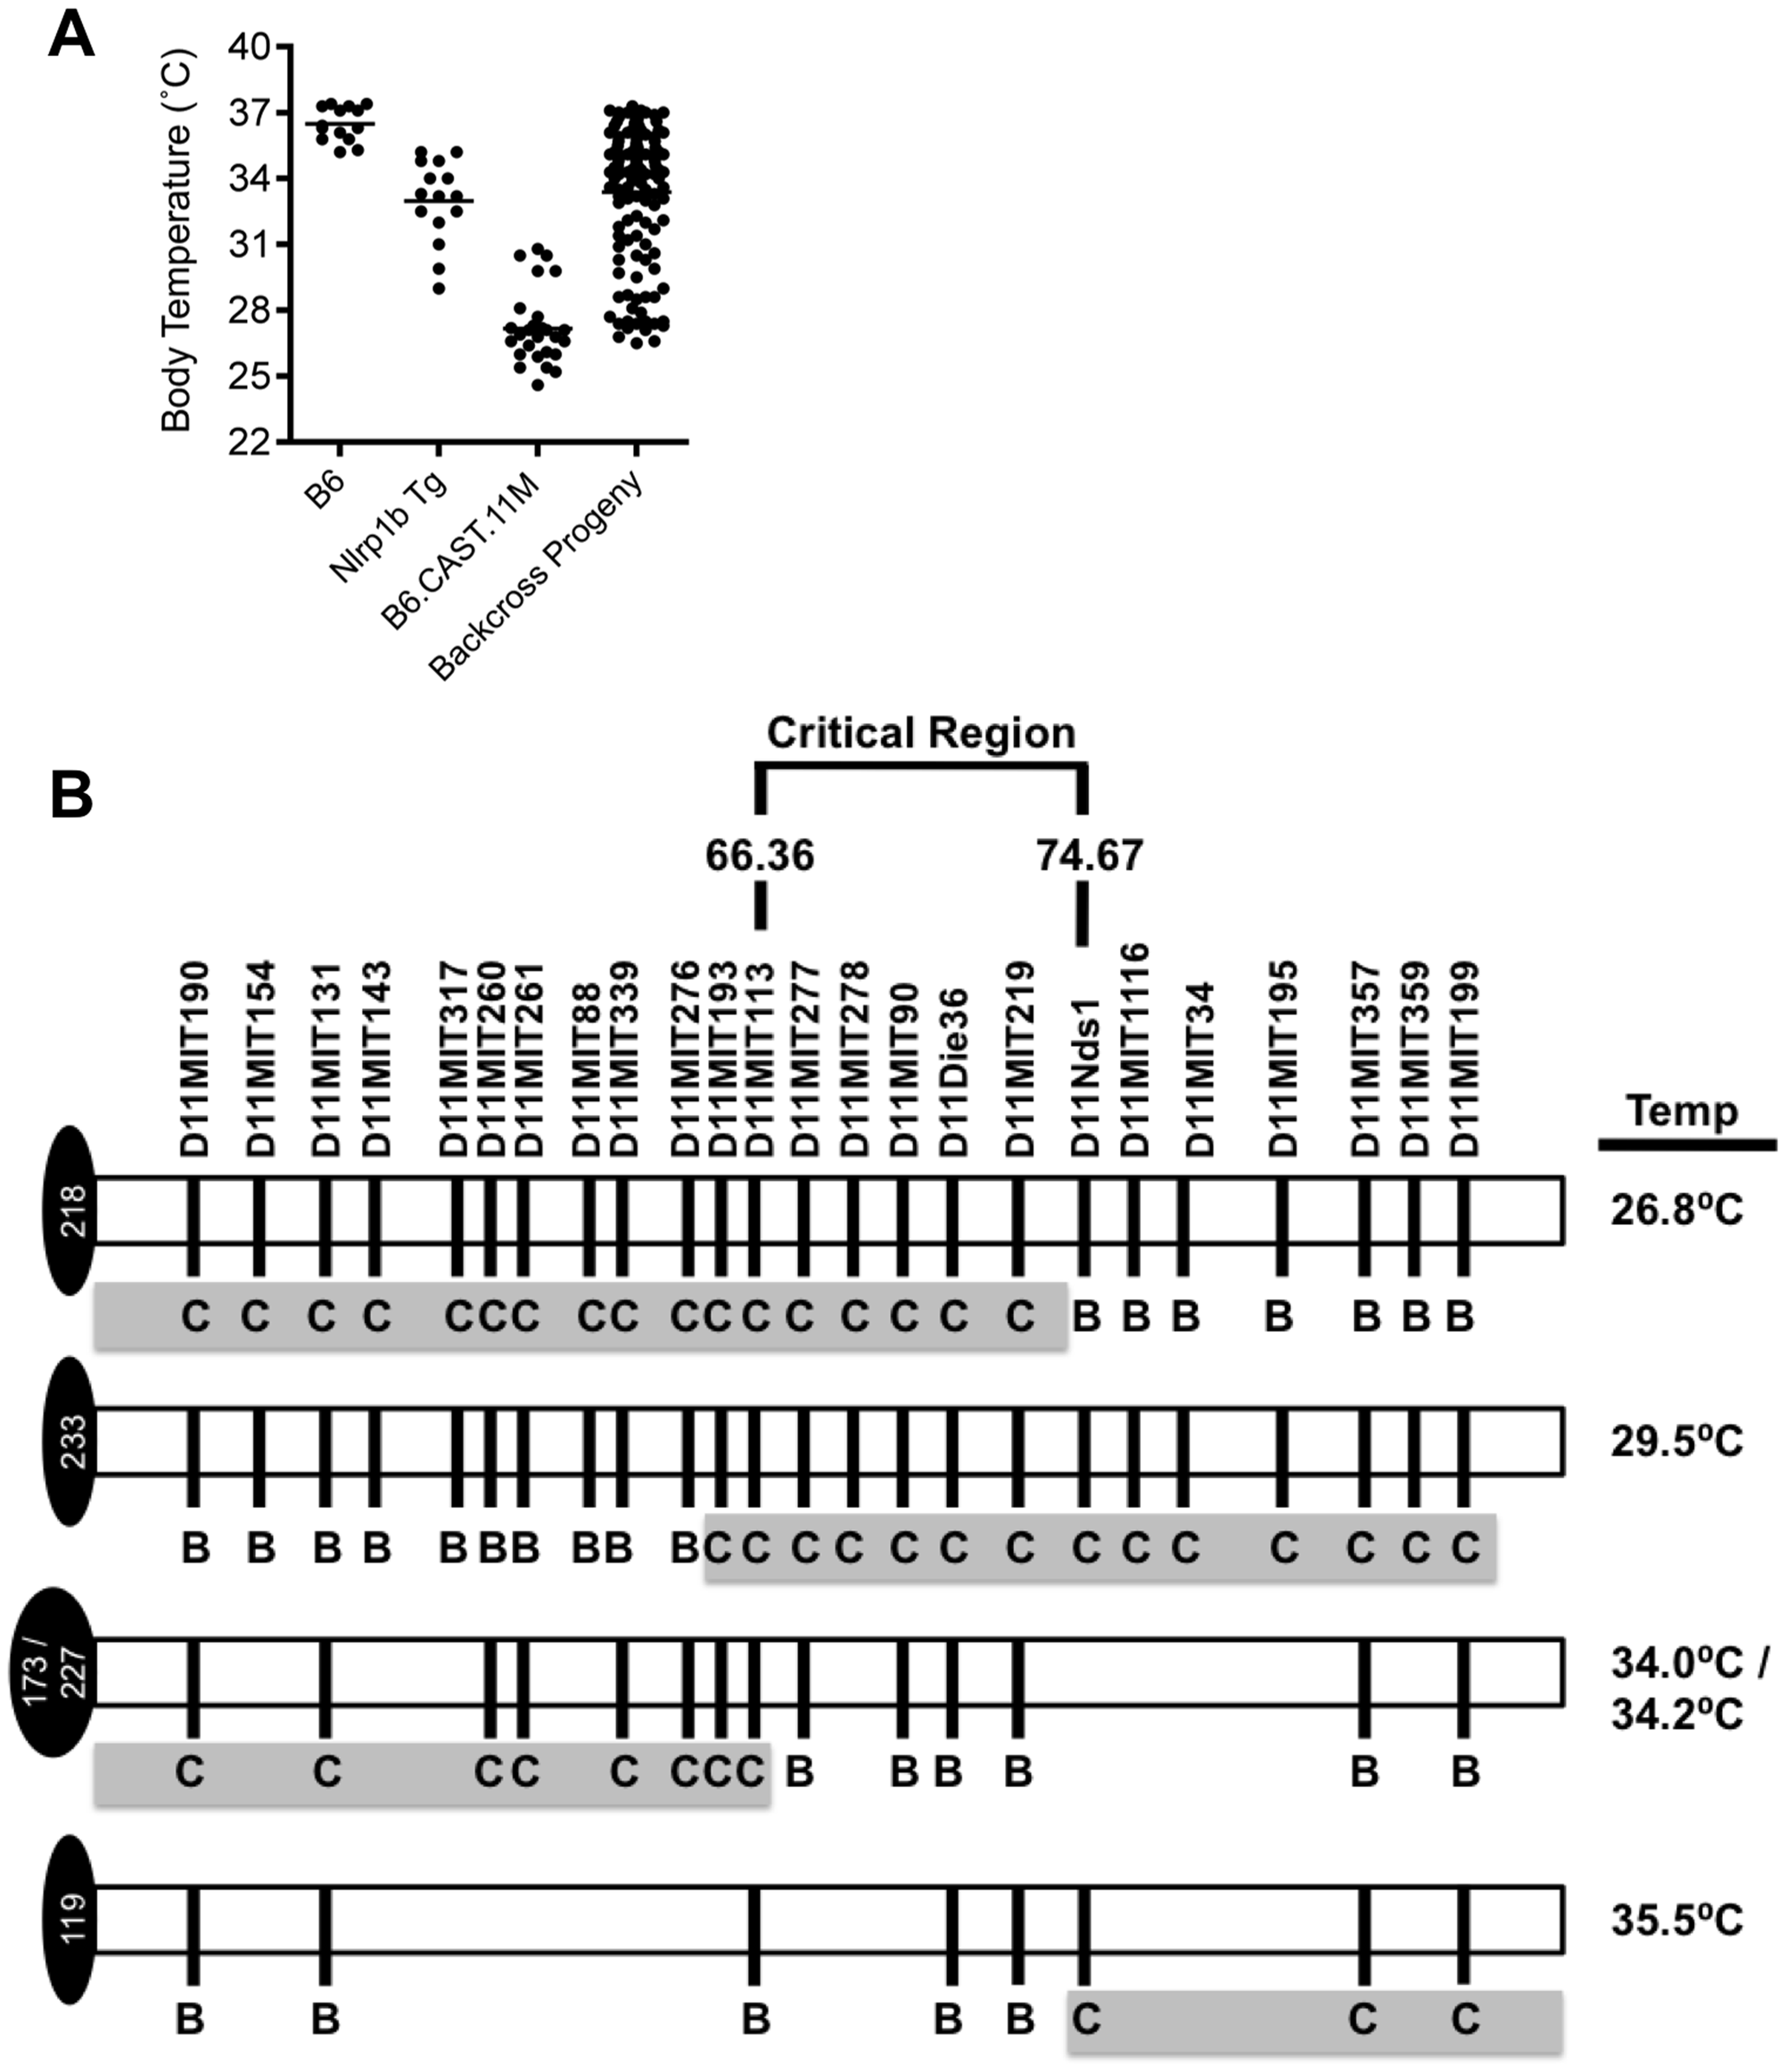 Refining the chromosome 11 critical region bestowing the LT-Induced ERP.